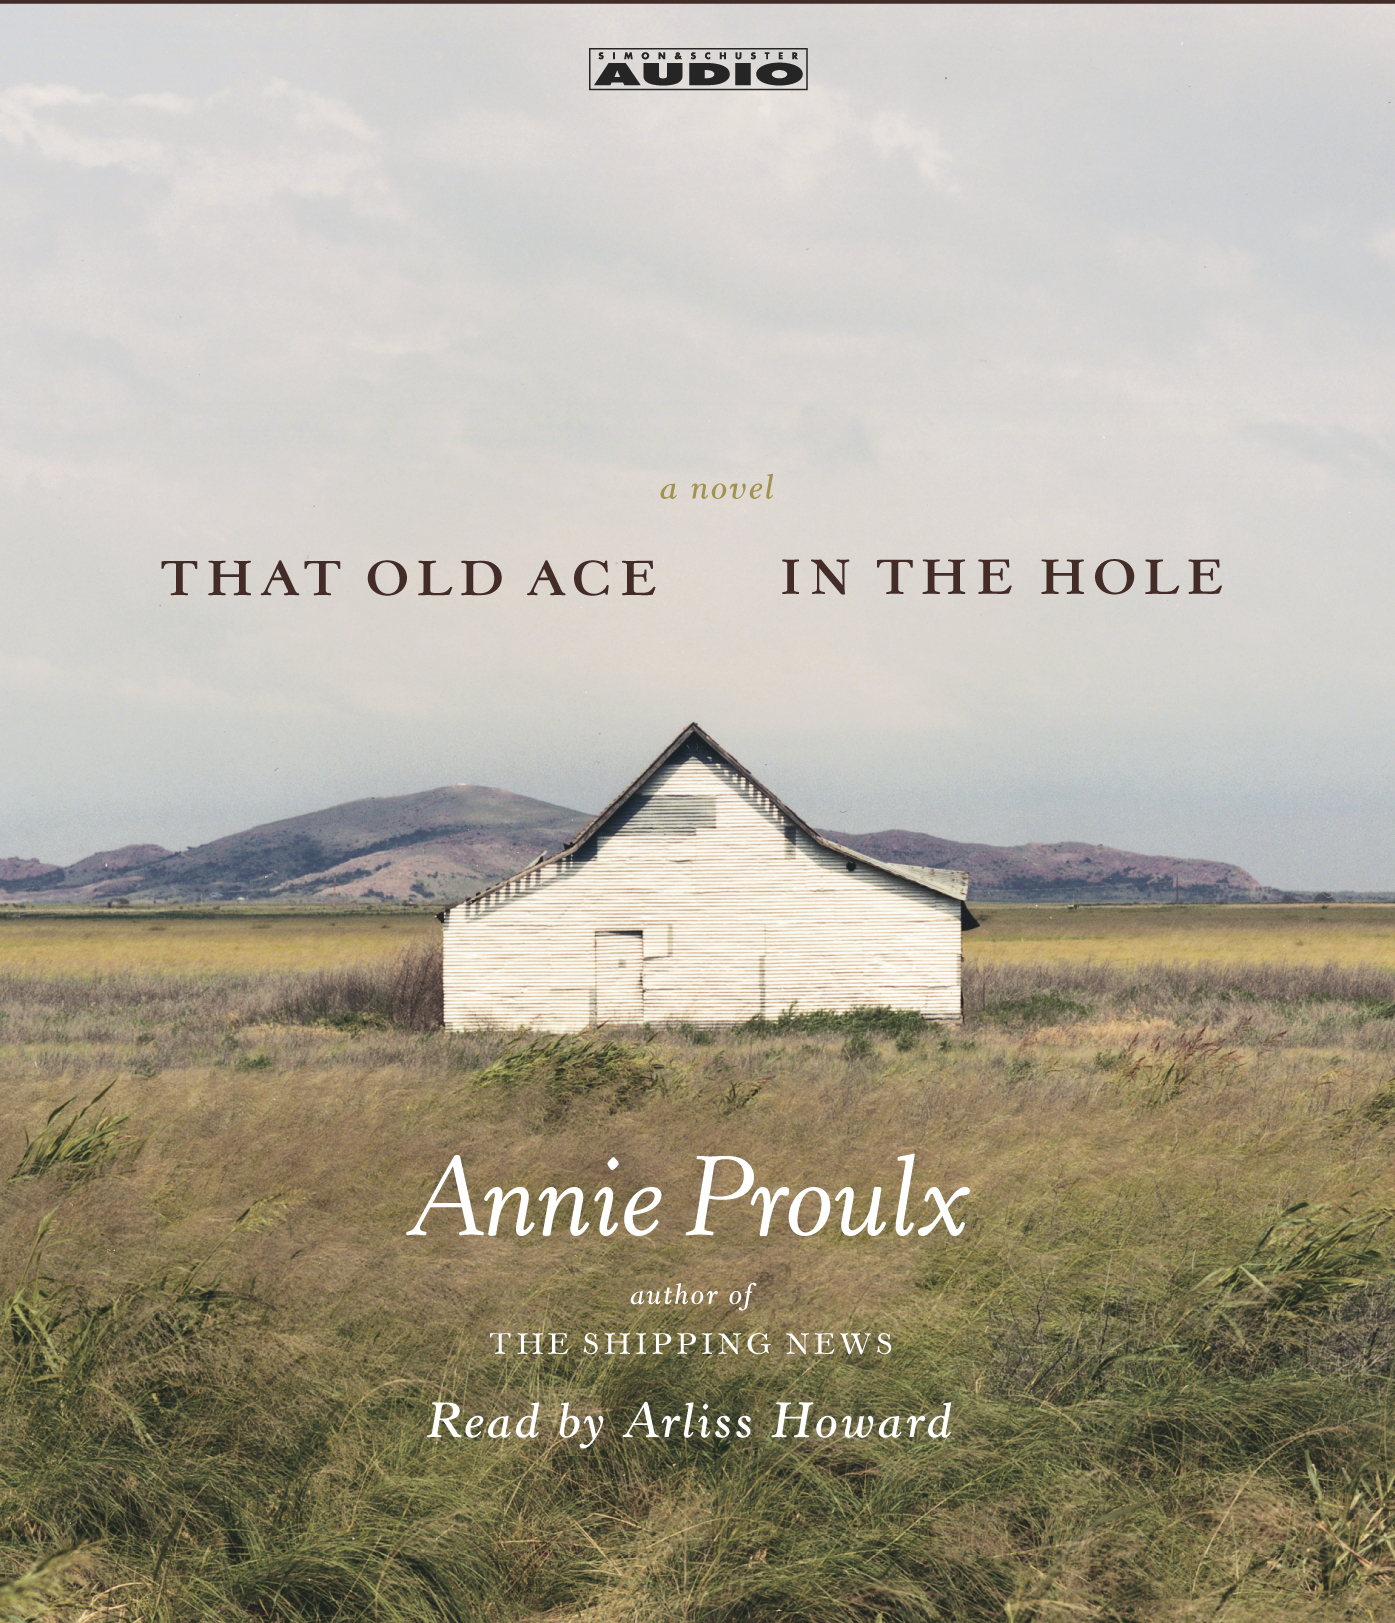 job history by annie proulx A short annie proulx biography describes annie proulx's life, times, and work also explains the historical and literary context that influenced the shipping news.